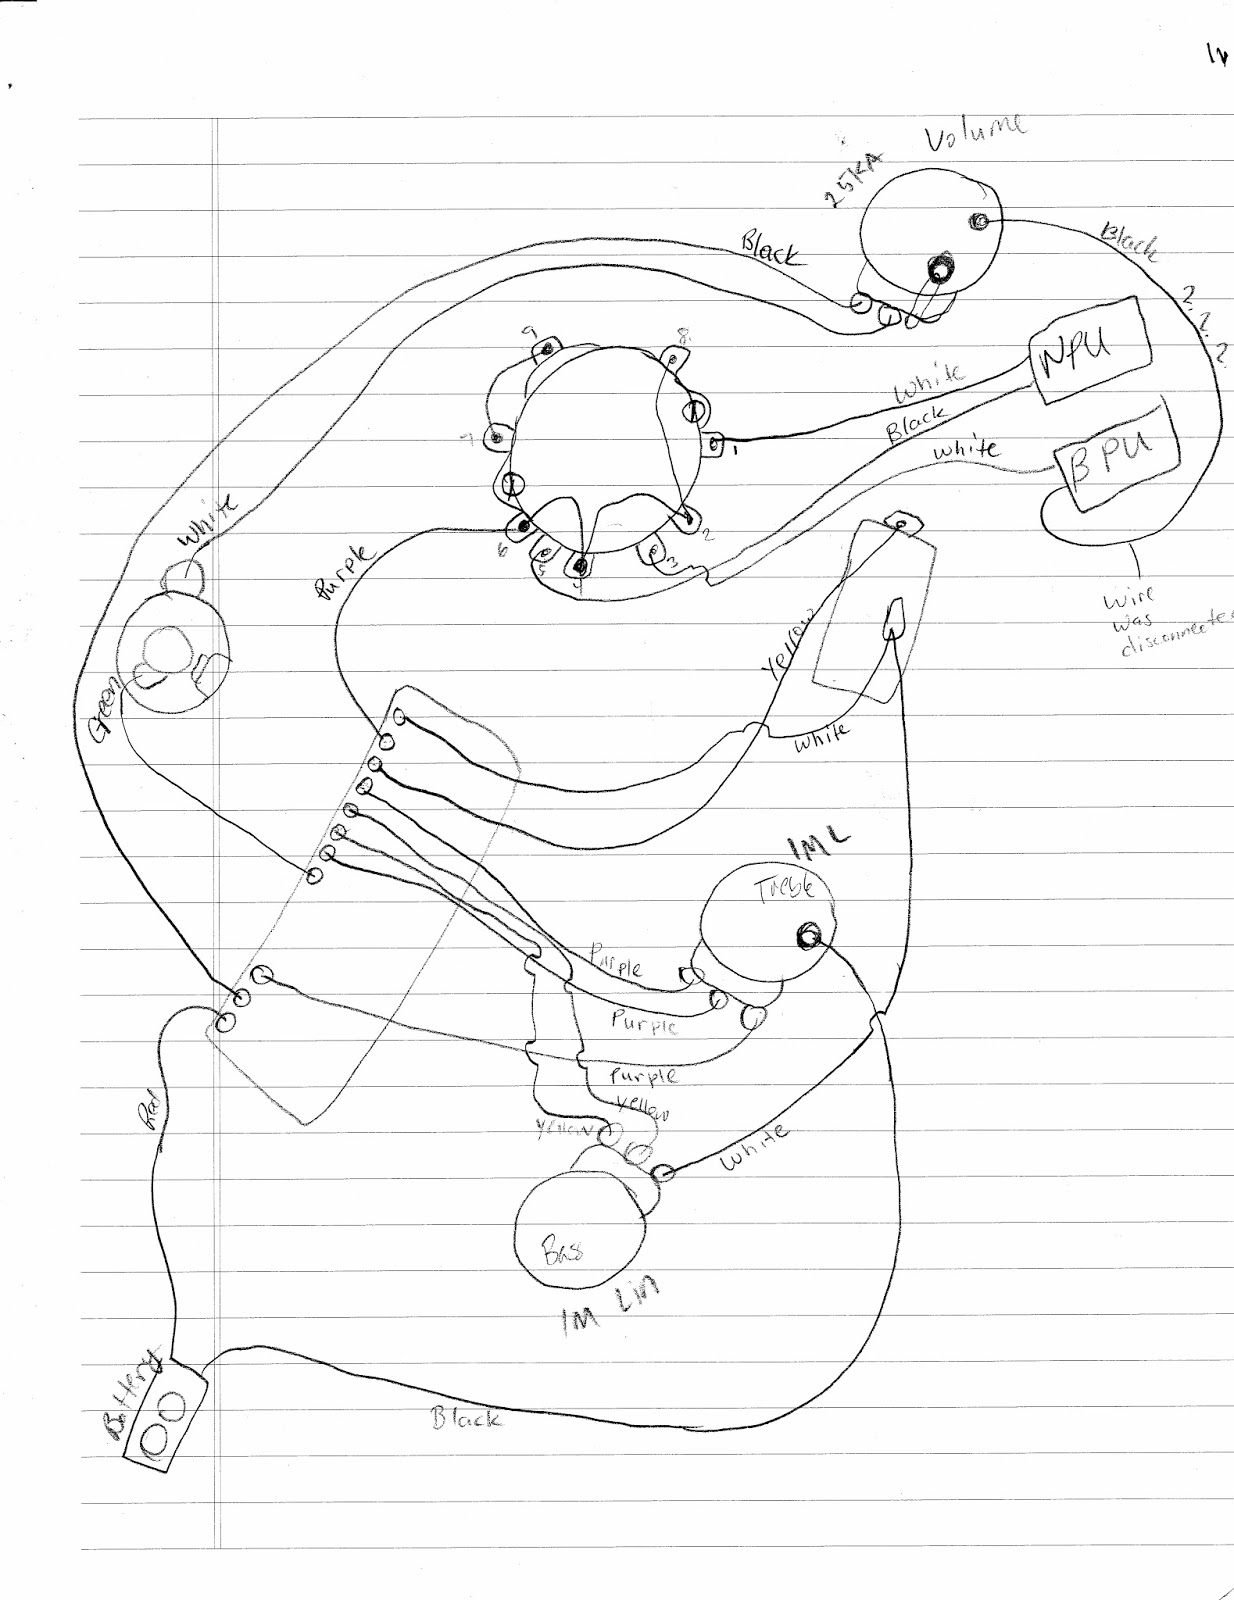 id_0002 1977 musicman stingray ii wiring diagrams griffin effects blog musicman stingray wiring diagram at bakdesigns.co